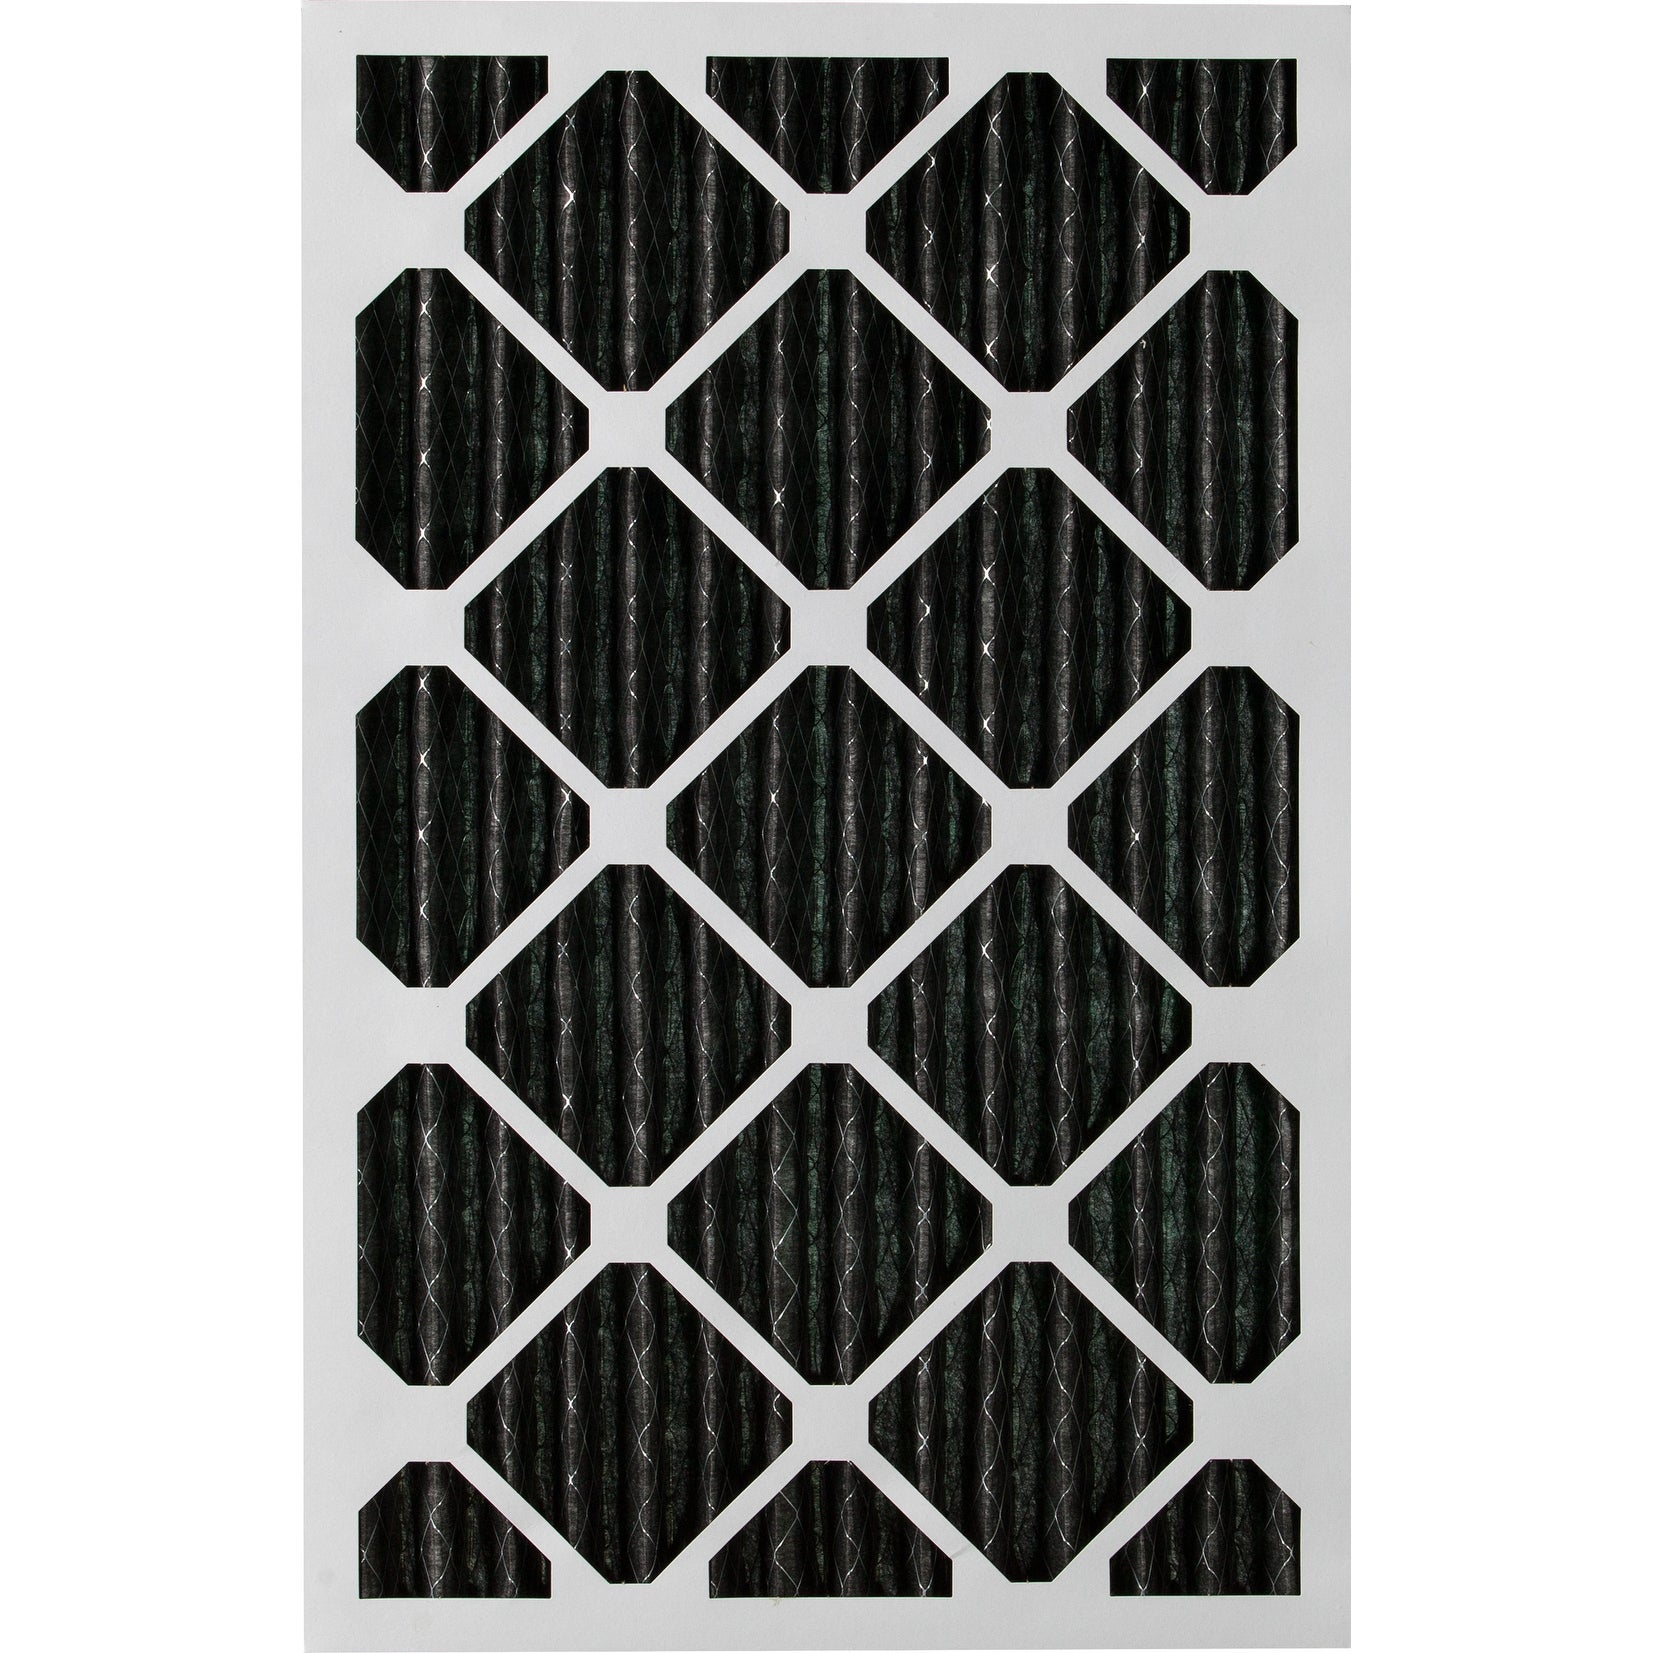 Nordic Pure 15x20x1 MERV 12 Pleated Plus Carbon AC Furnace Air Filters 15 x 20 x 1 3 Piece